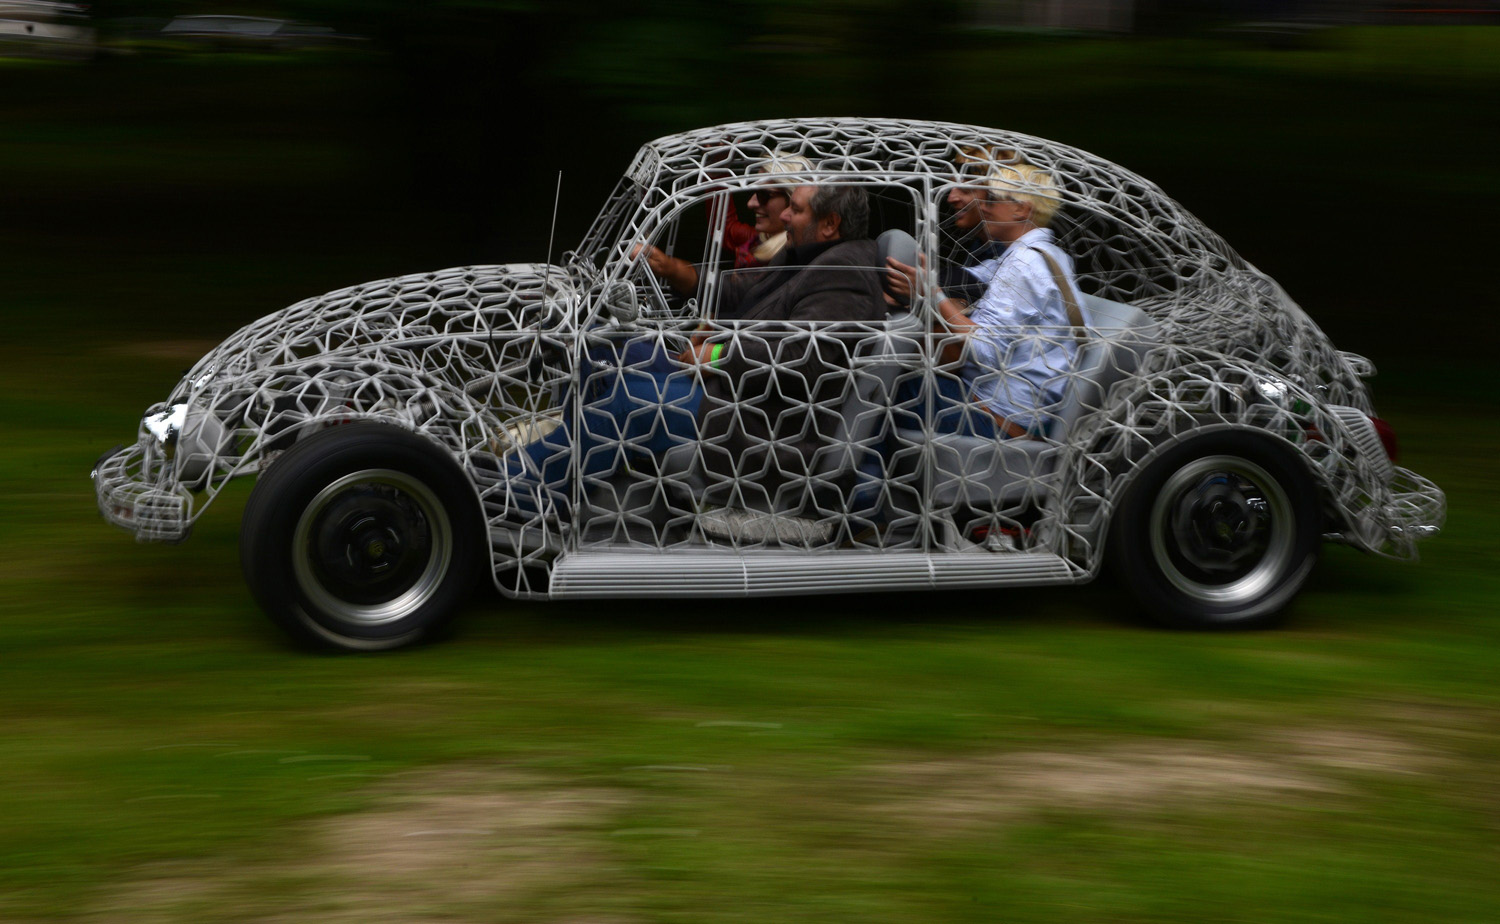 A wire-bodied Orion Volkswagen Beetle is pictured at the  Legendy  Motoring Festival in Prague on June 14, 2014.